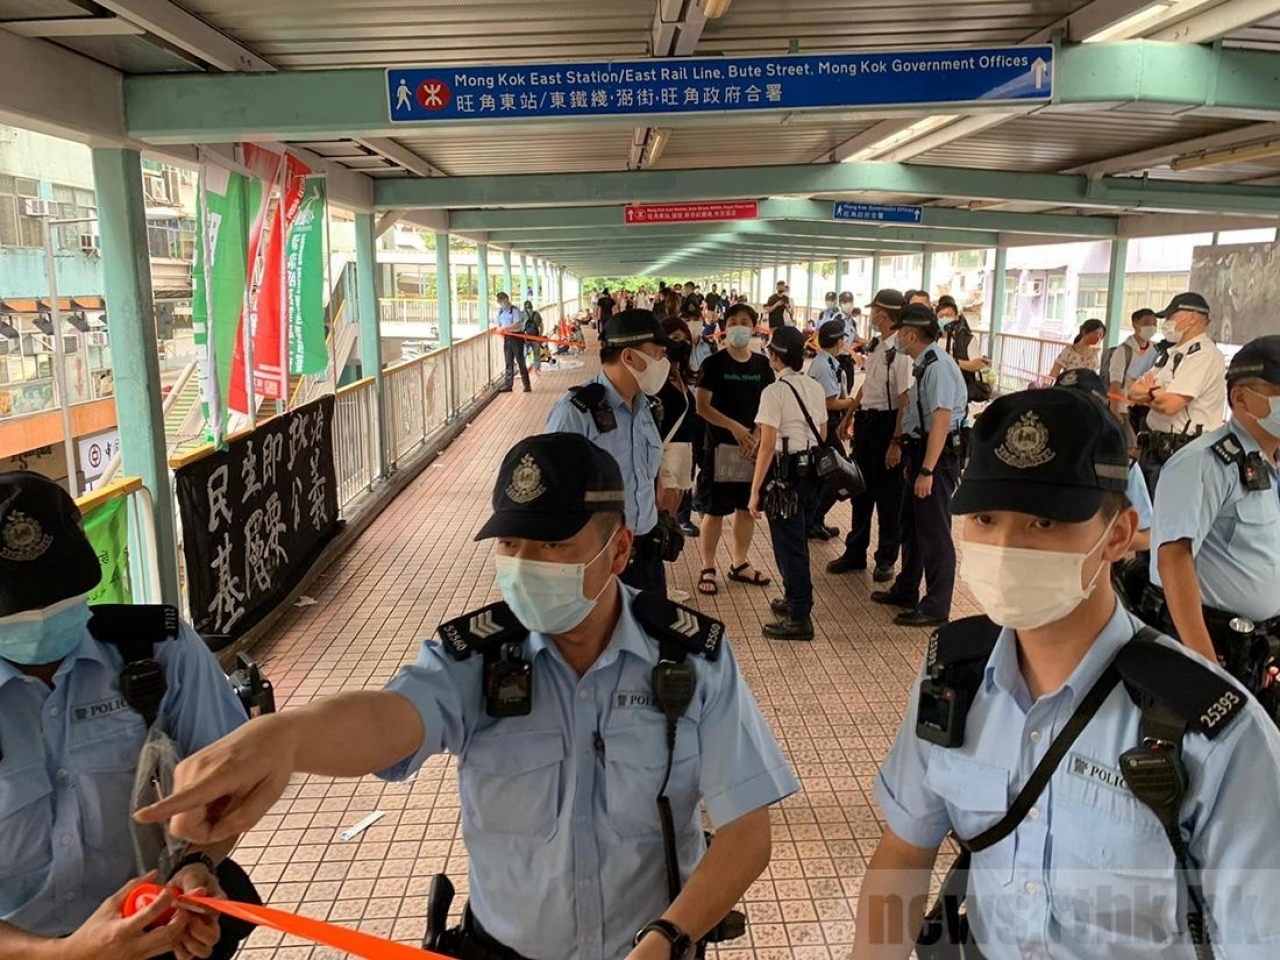 Police officers surround booths by the Confederation of Trade Unions in Mong Kok. Photo: RTHK